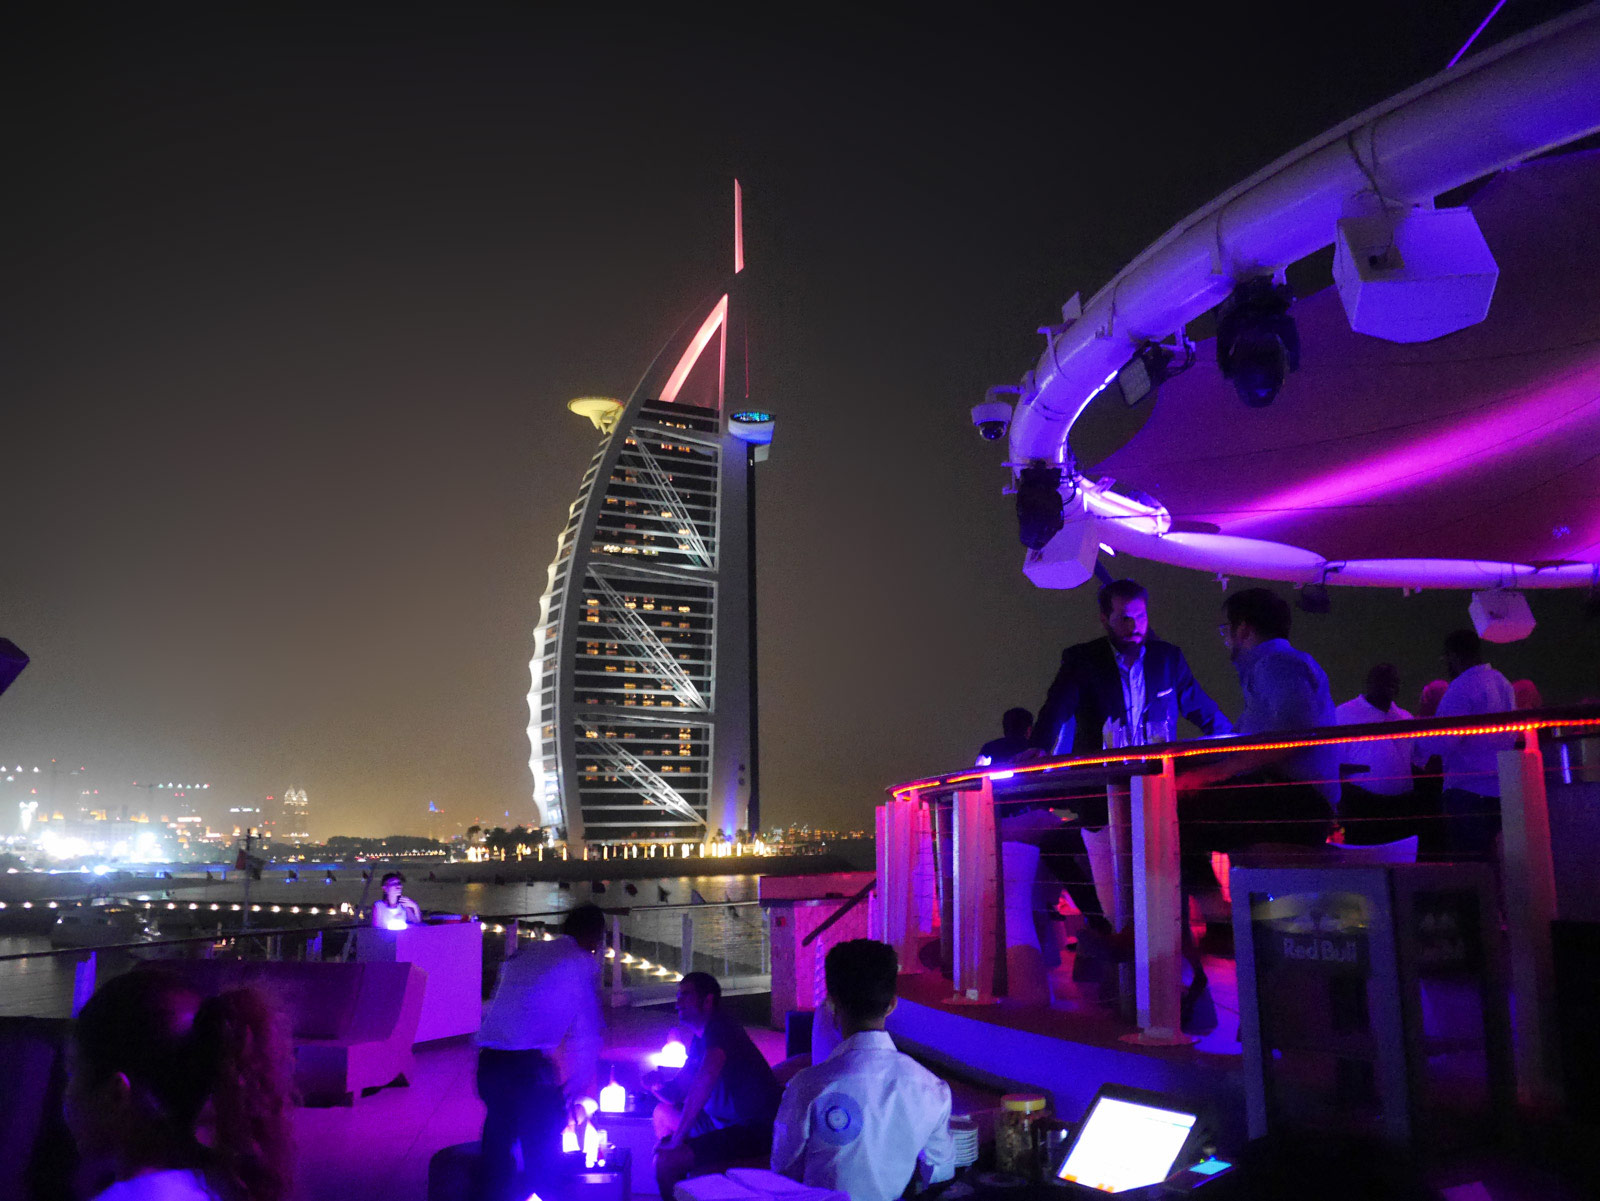 Admiring Burj Al Arab from 360° Bar & Nightclub - Dubai, United Arab Emirates